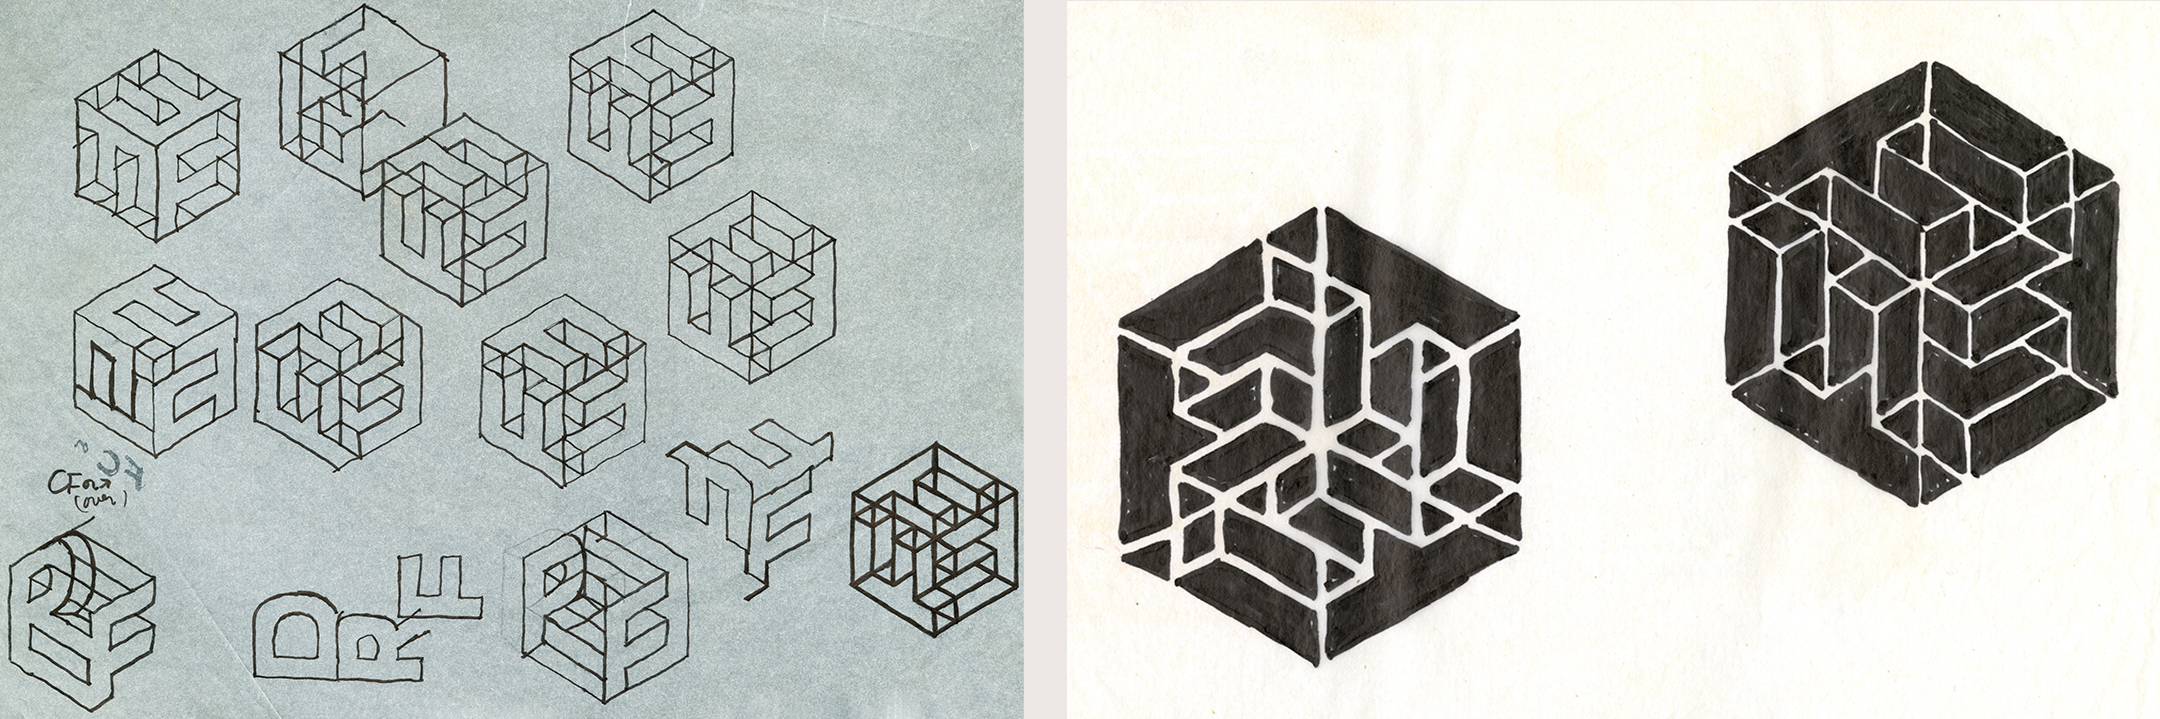 Early sketches of Ferriter's cube logo for his own design firm